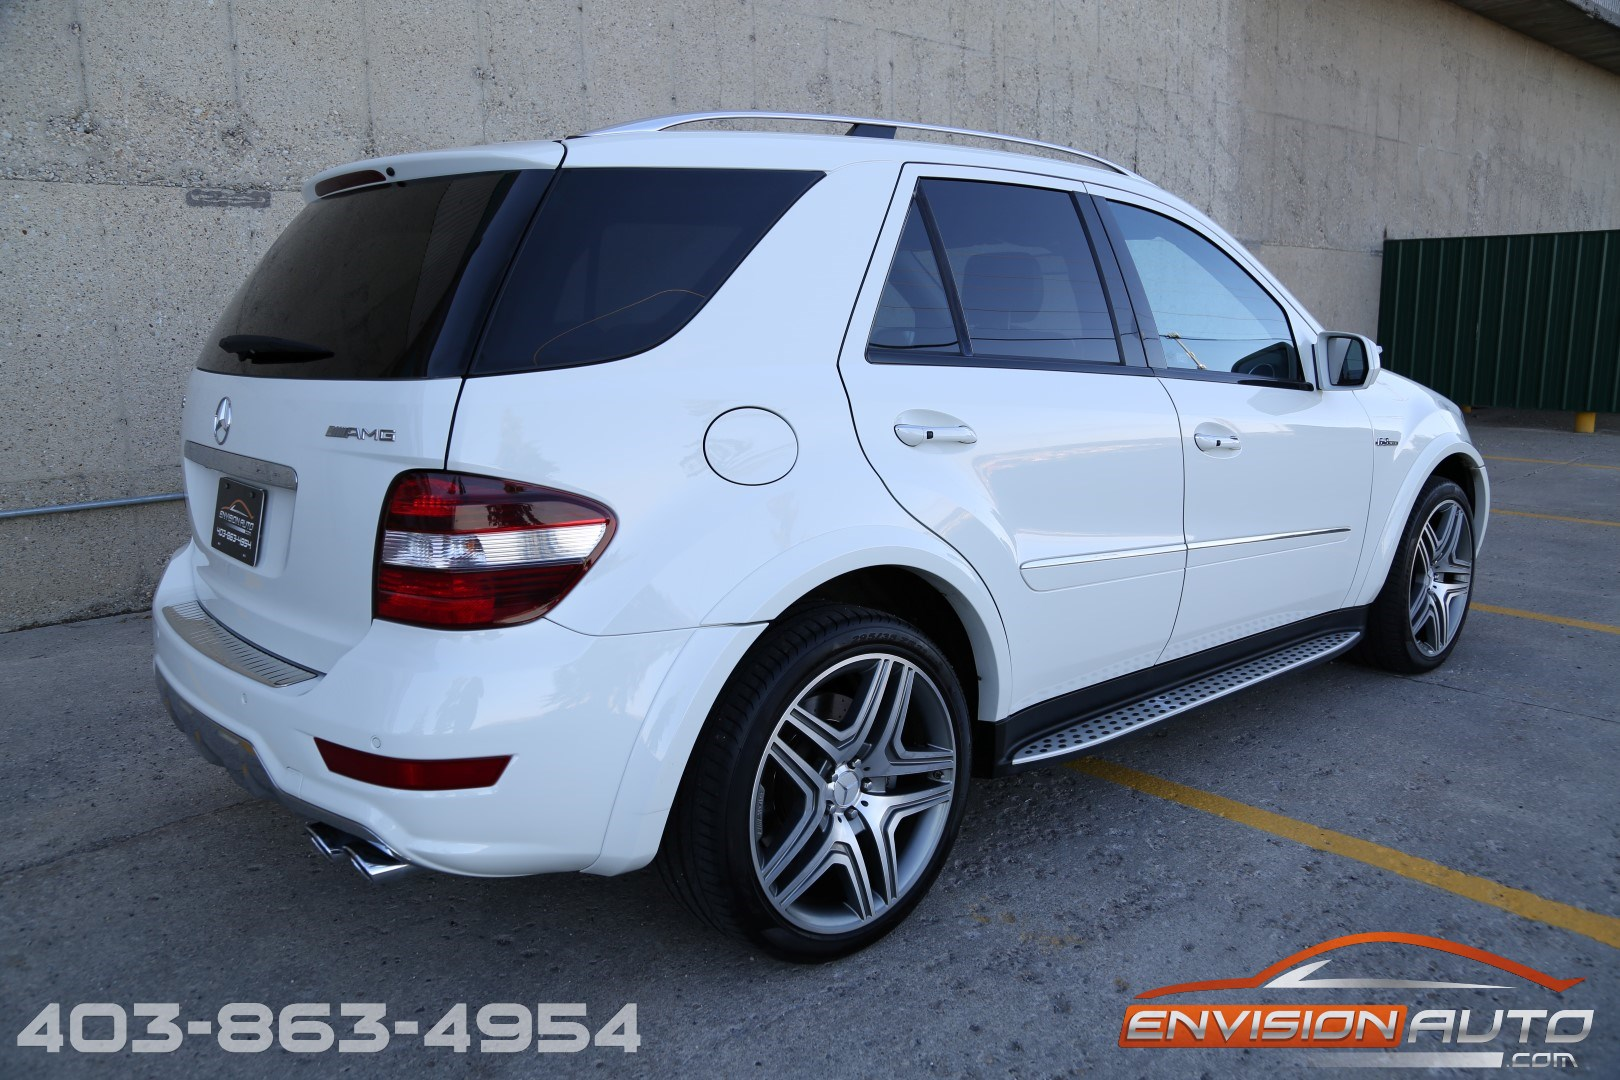 2009 mercedes benz ml63 amg envision auto. Black Bedroom Furniture Sets. Home Design Ideas